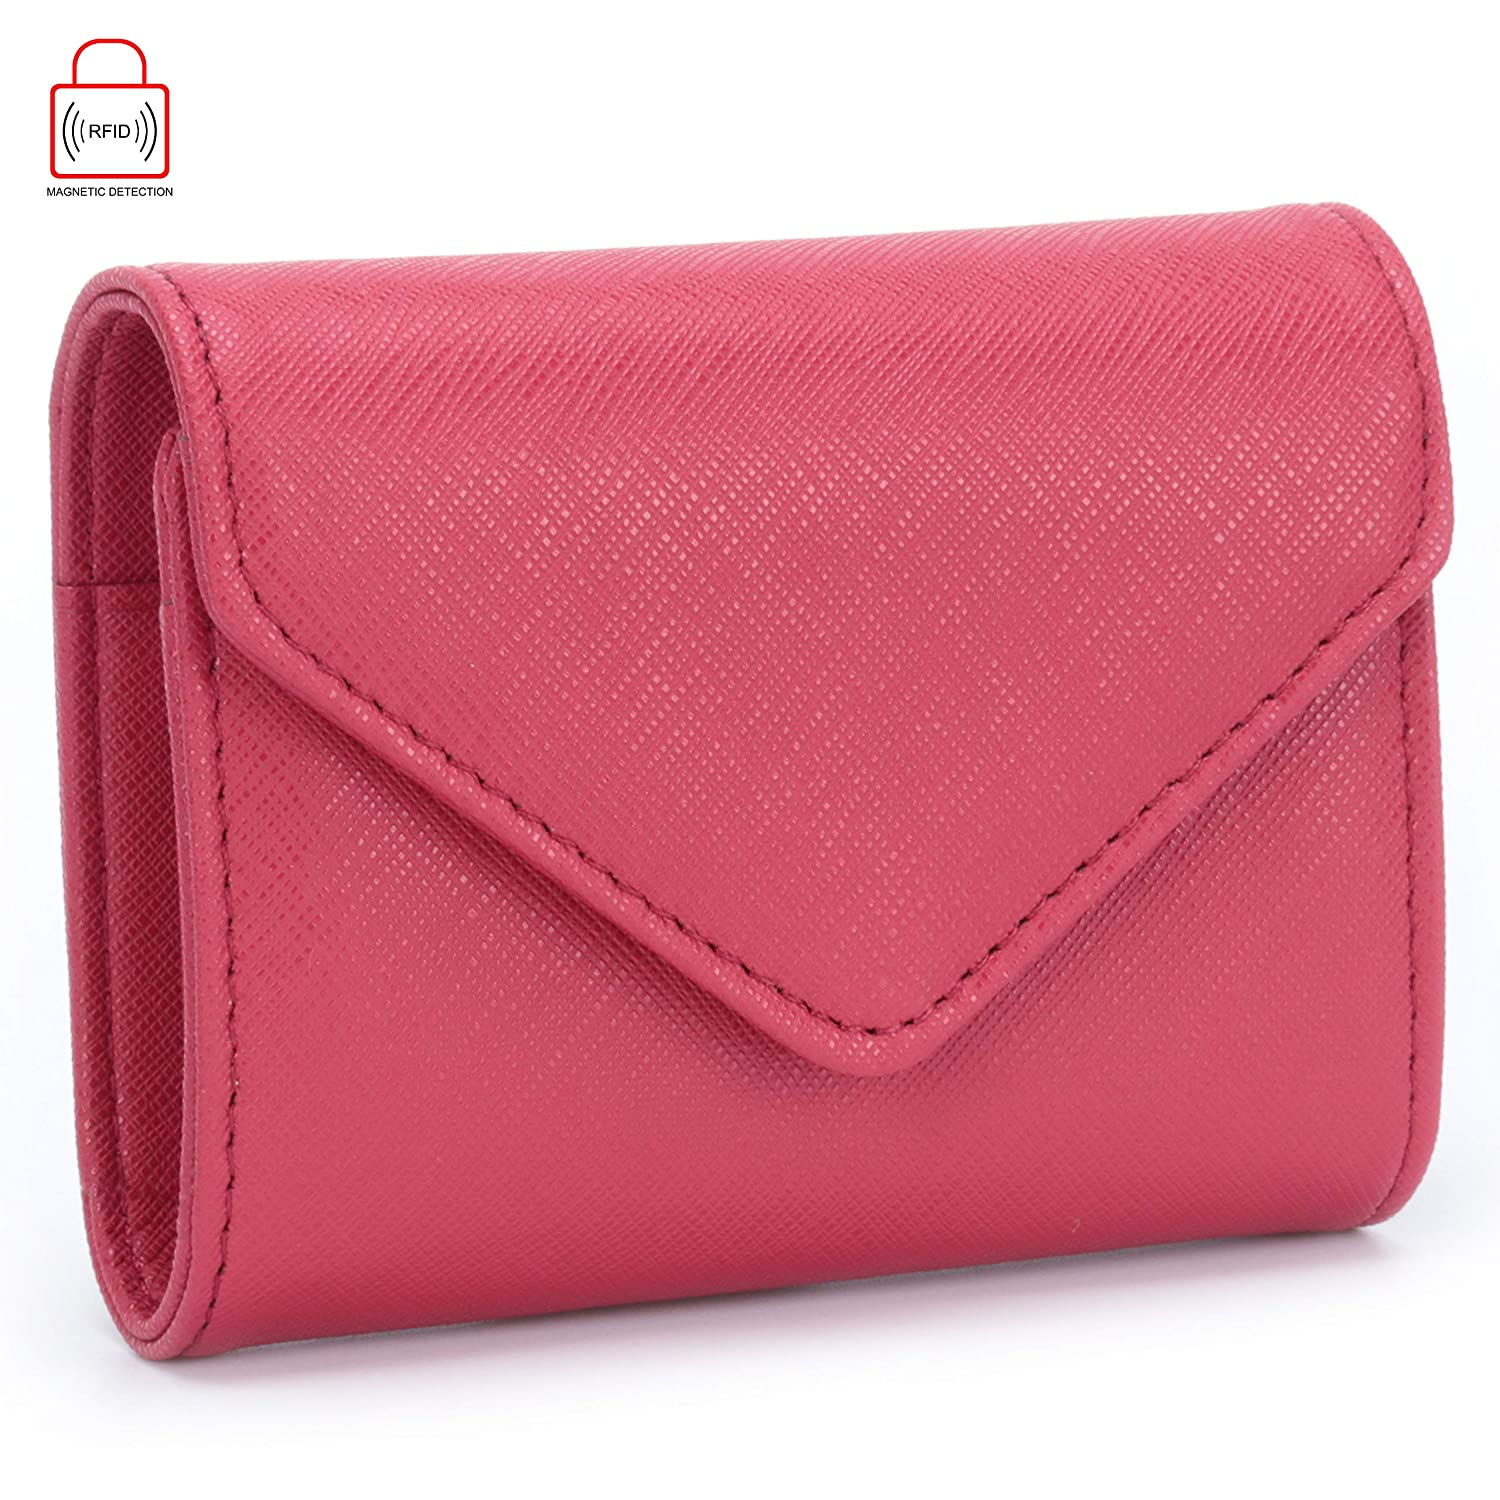 MuLier RFID Blocking Womens Leather Card Case Wallet Envelope Card Wallet Purse (Red) CH0024-red